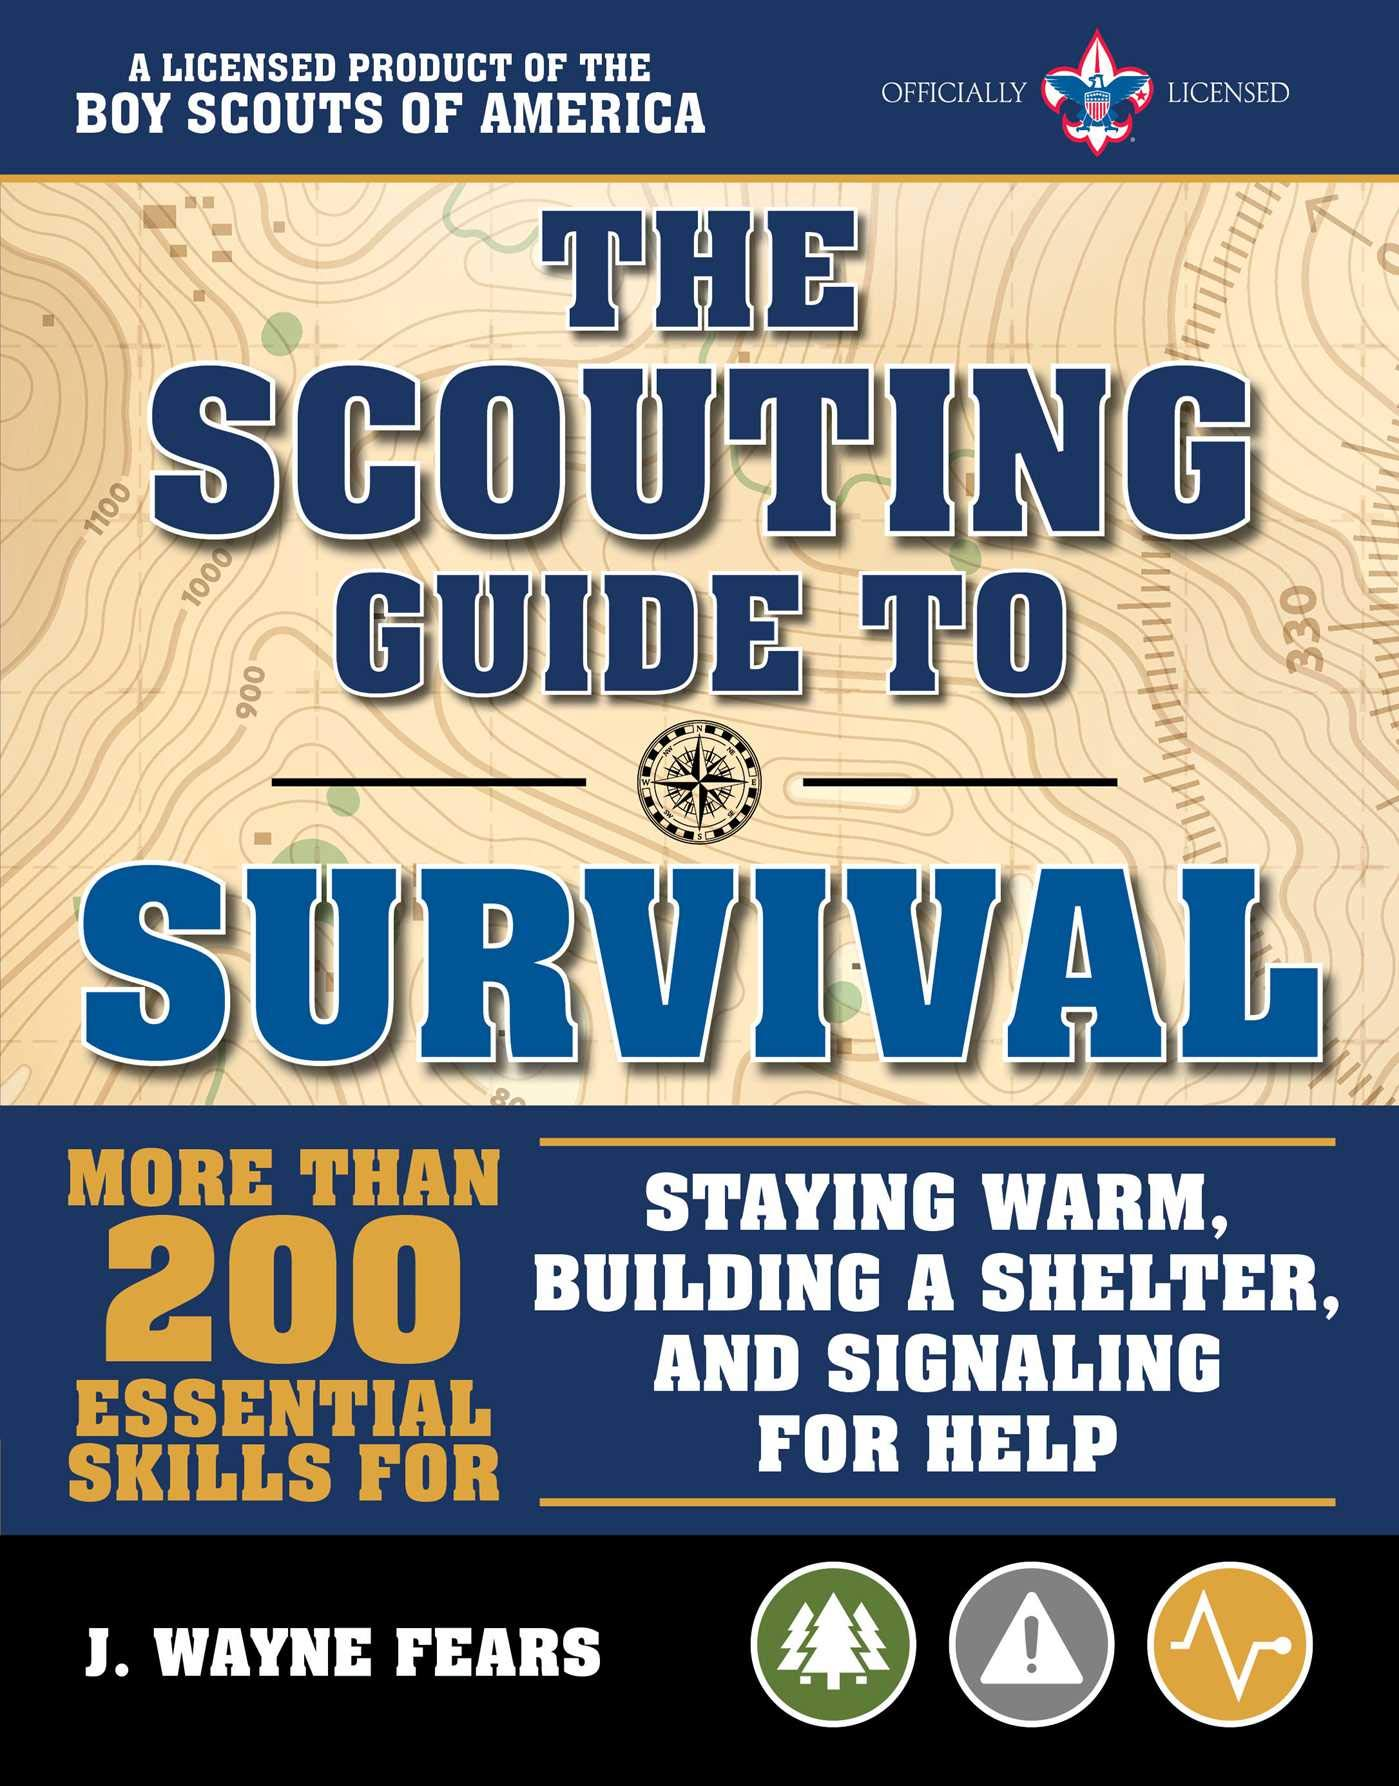 The Scouting Guide to Survival: An Officially-Licensed Boy Scouts of America Handbook by Skyhorse